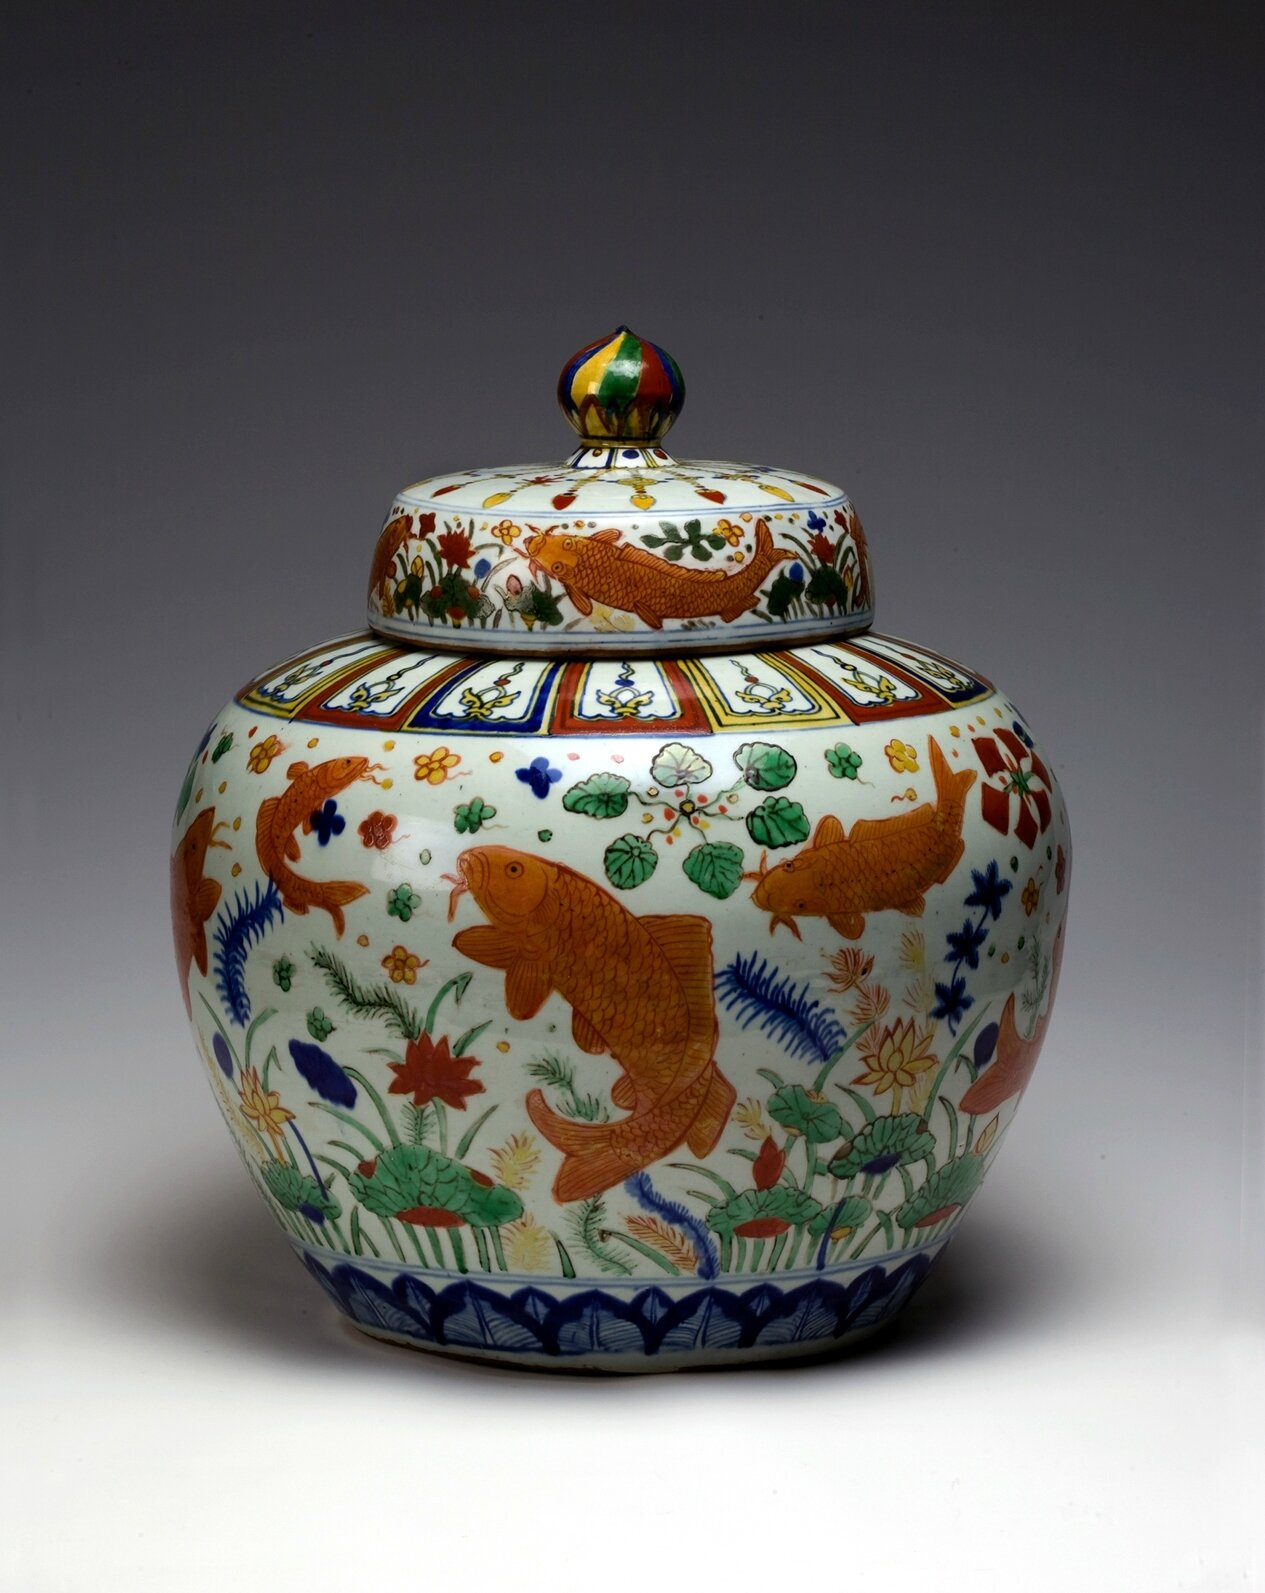 Covered jar with fish in lotus pond